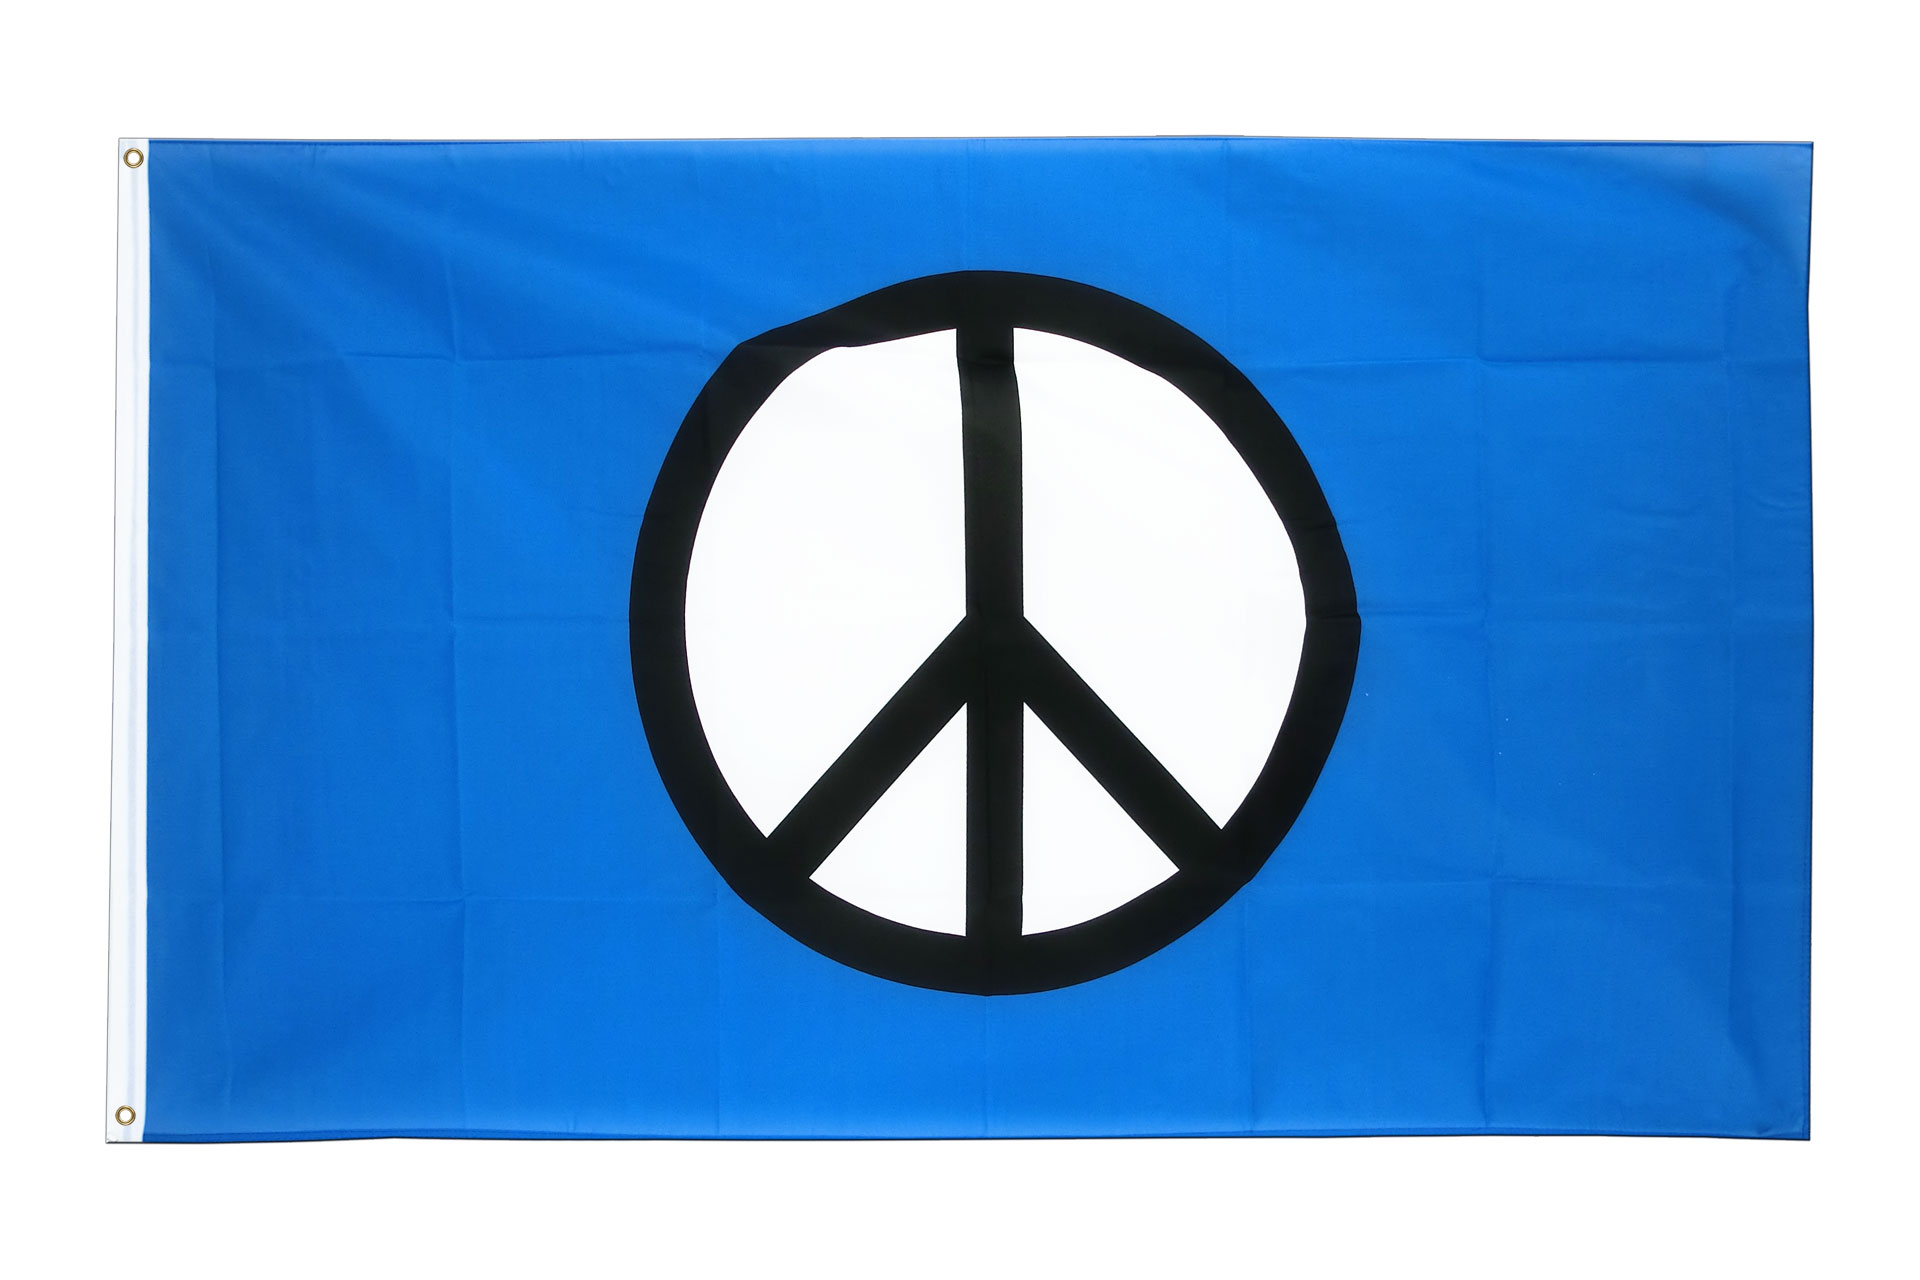 Peace CND Flag - 3 ft. x 5 ft. to buy / for sale: www.royal-flags.co.uk/buy-peace-cnd-flag-1932